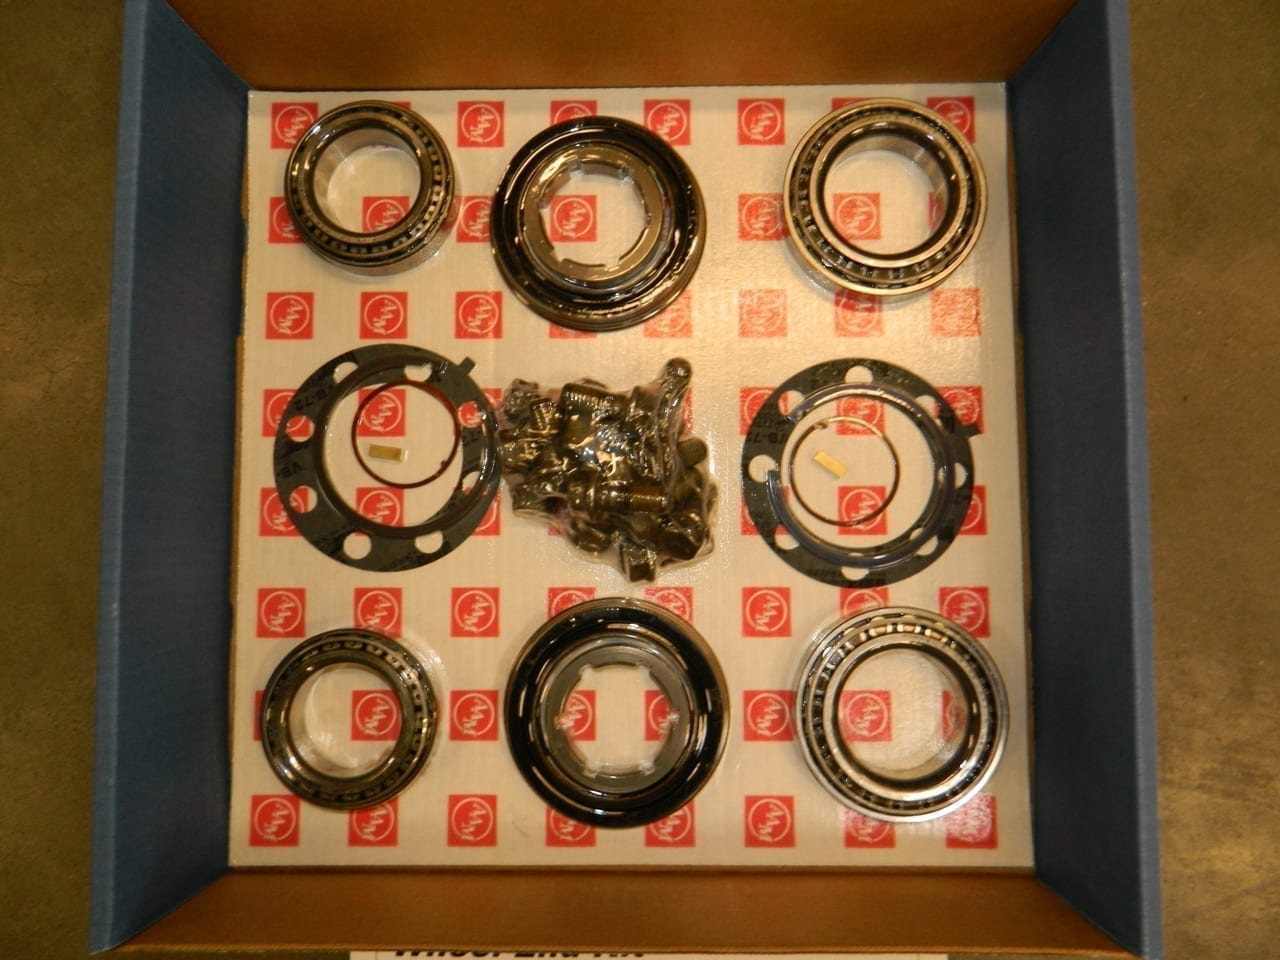 2001-2010 GM Chevy Hub Bearing & Seal Kit AAM Axle Dual Rear Wheel End Dually Kit